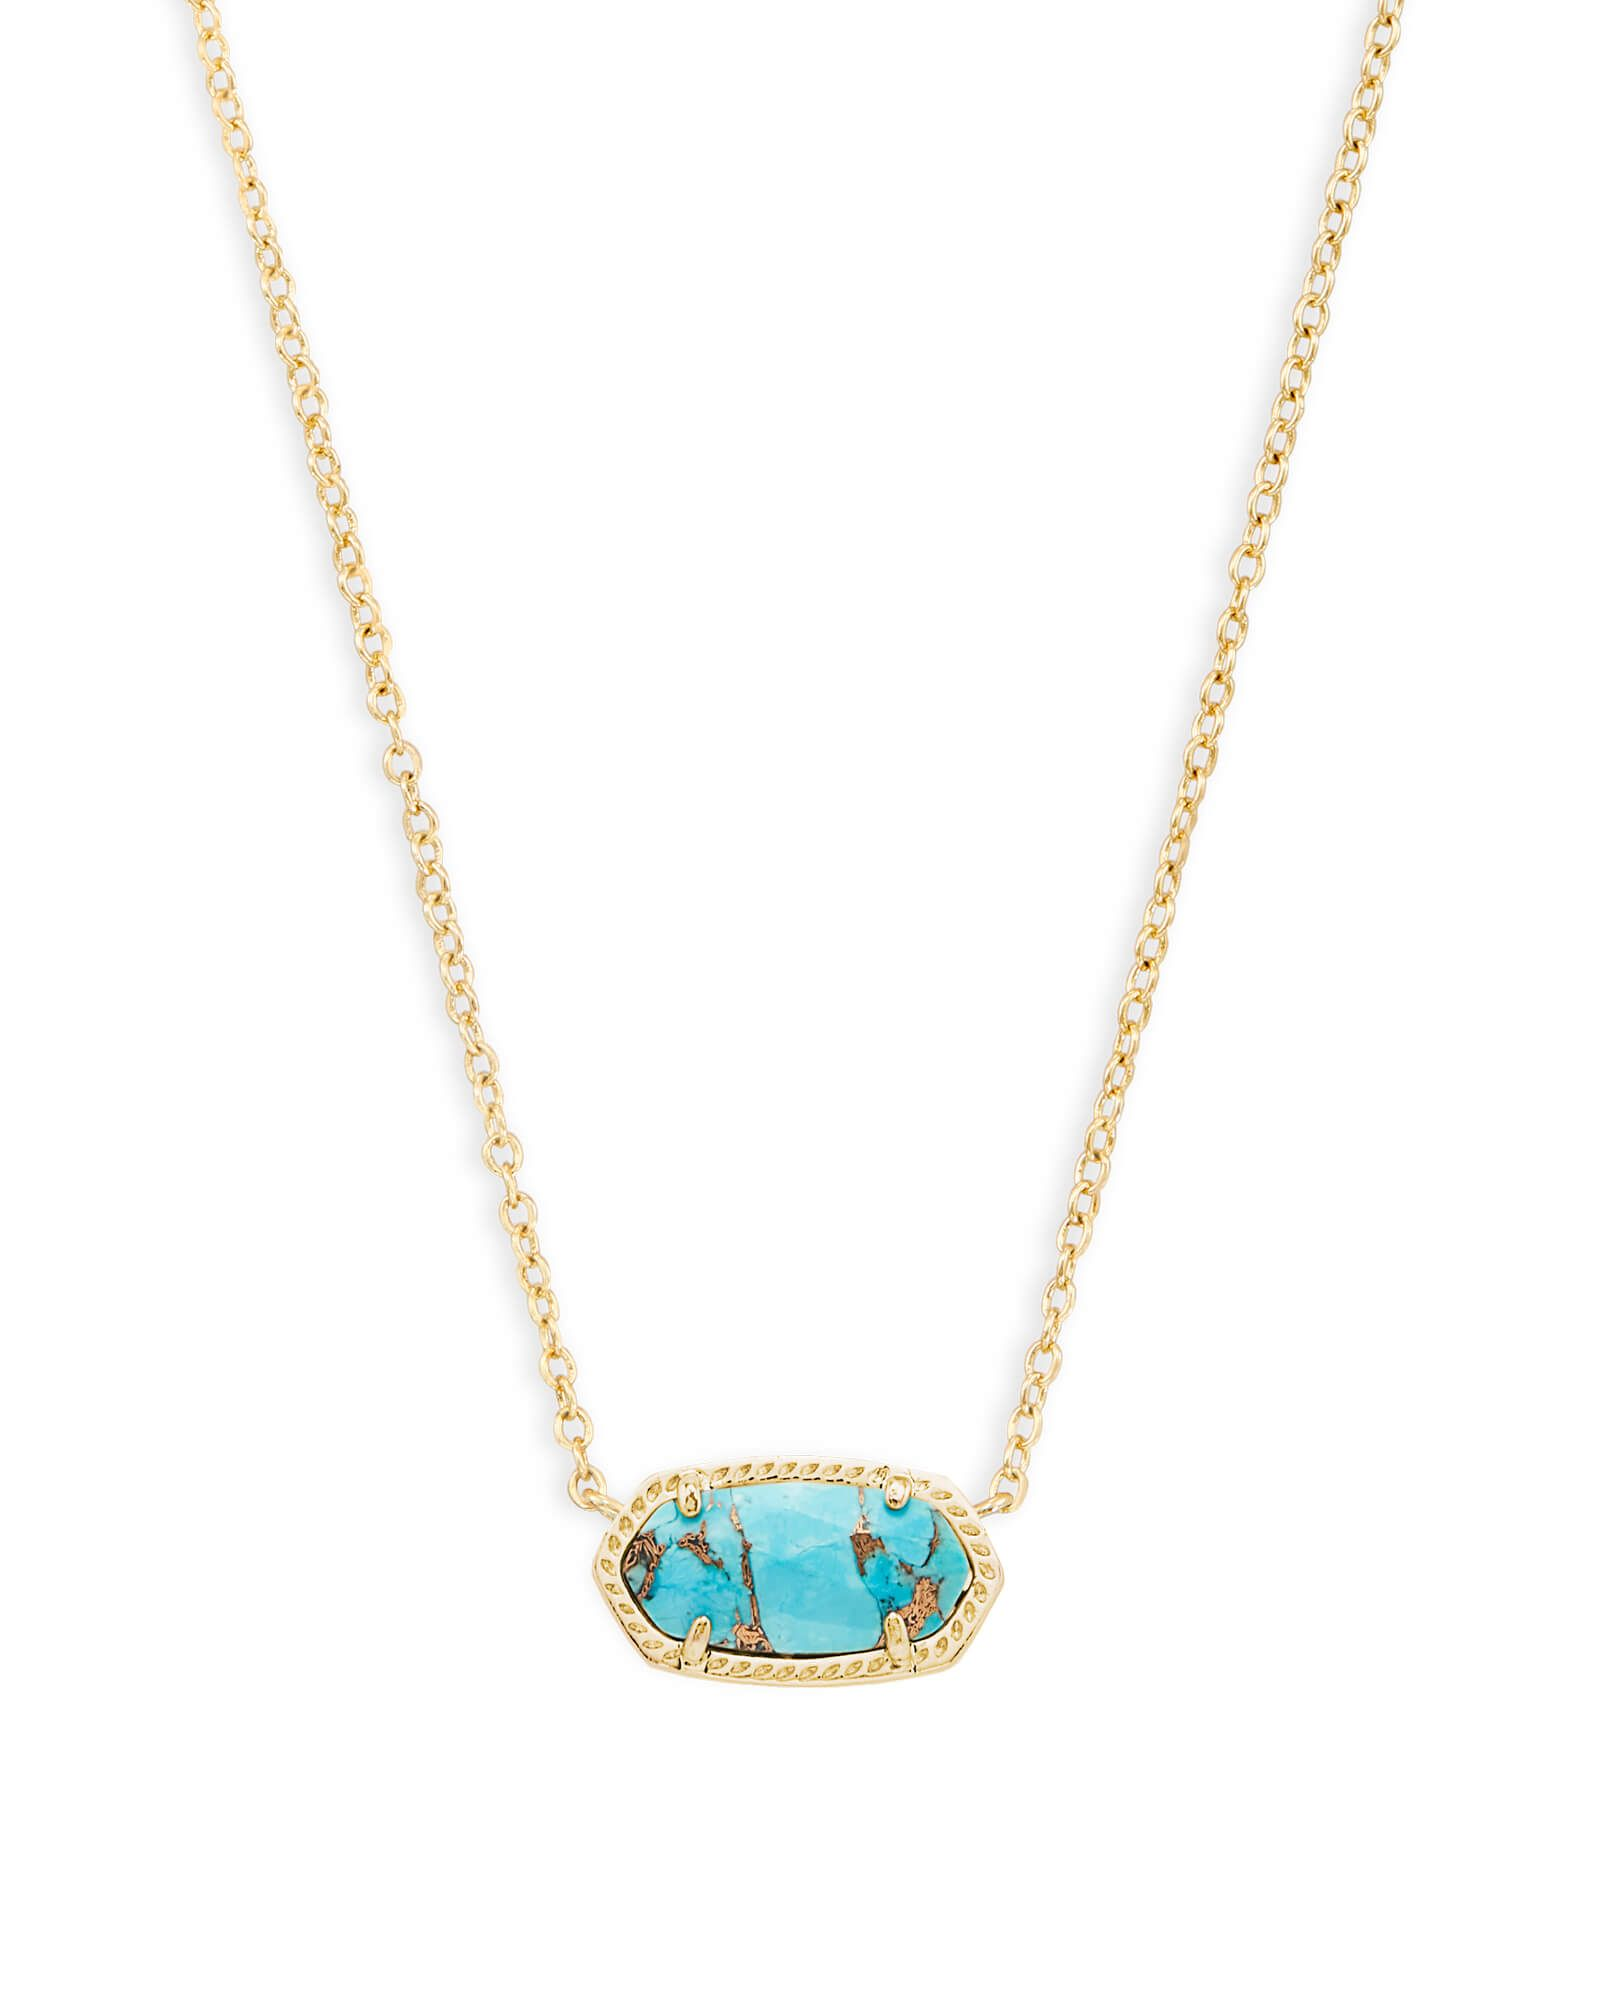 Shop silver pendant necklace in veined blue turquoise at kendra